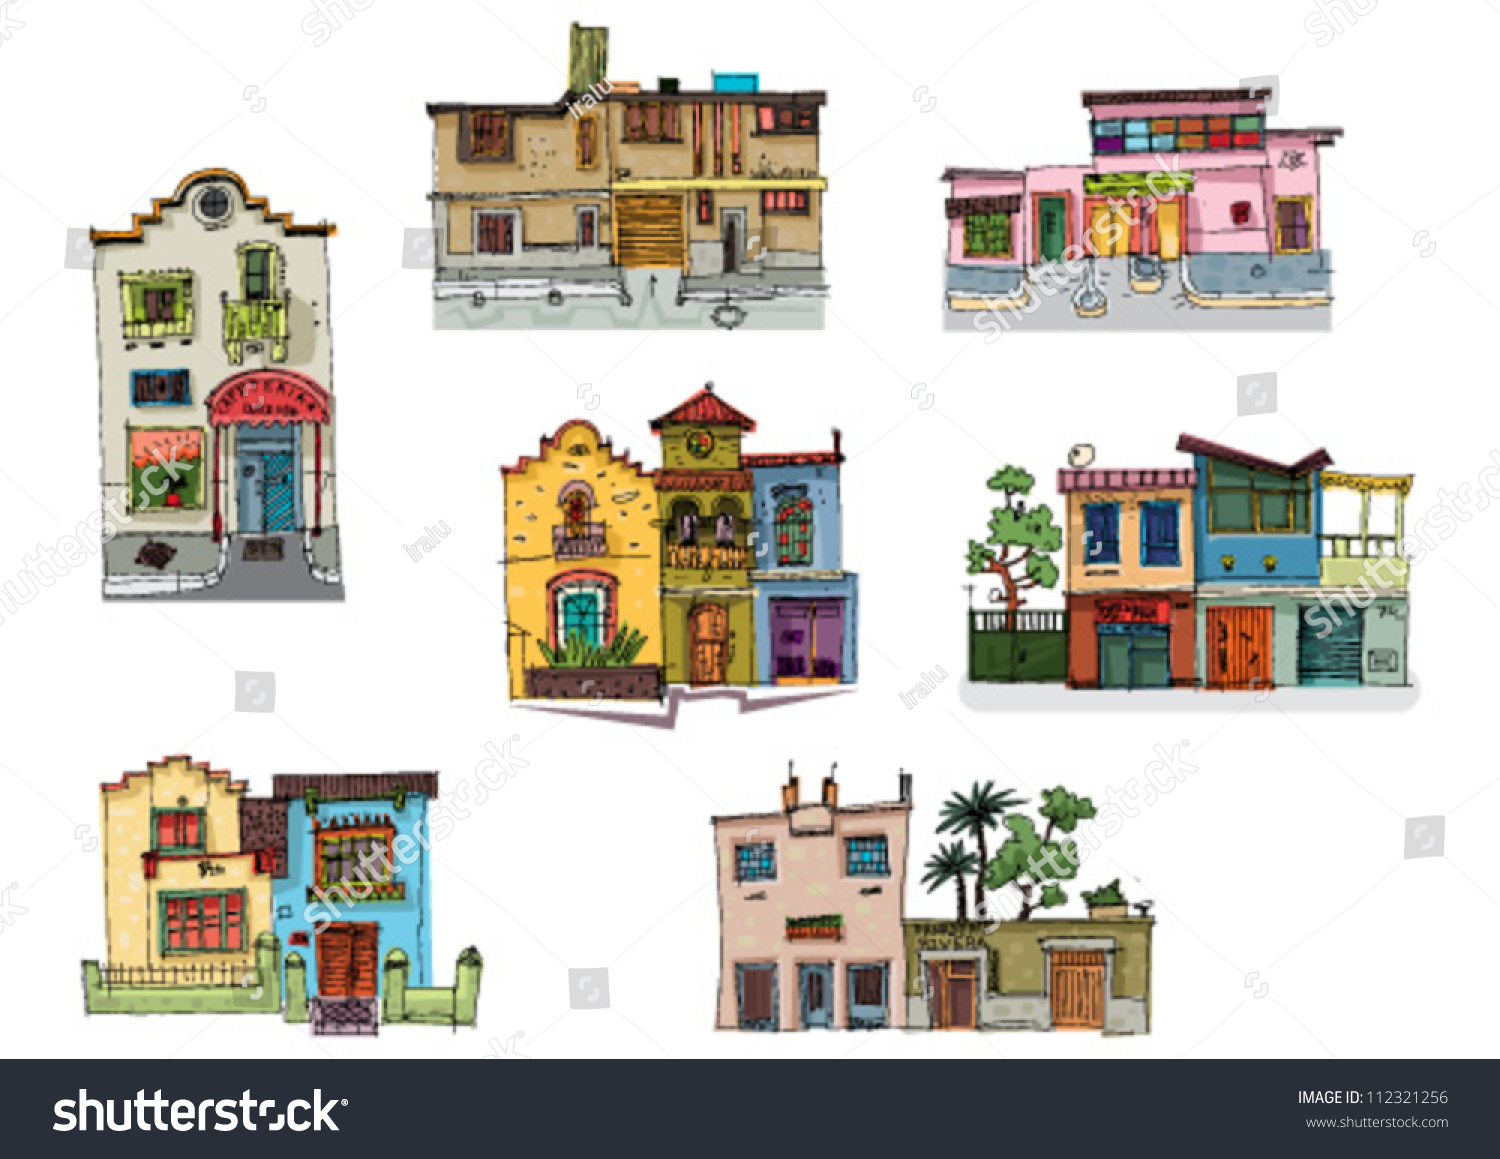 Mexico City Facades Cartoon Set Stock Vector 112321256 - Shutterstock